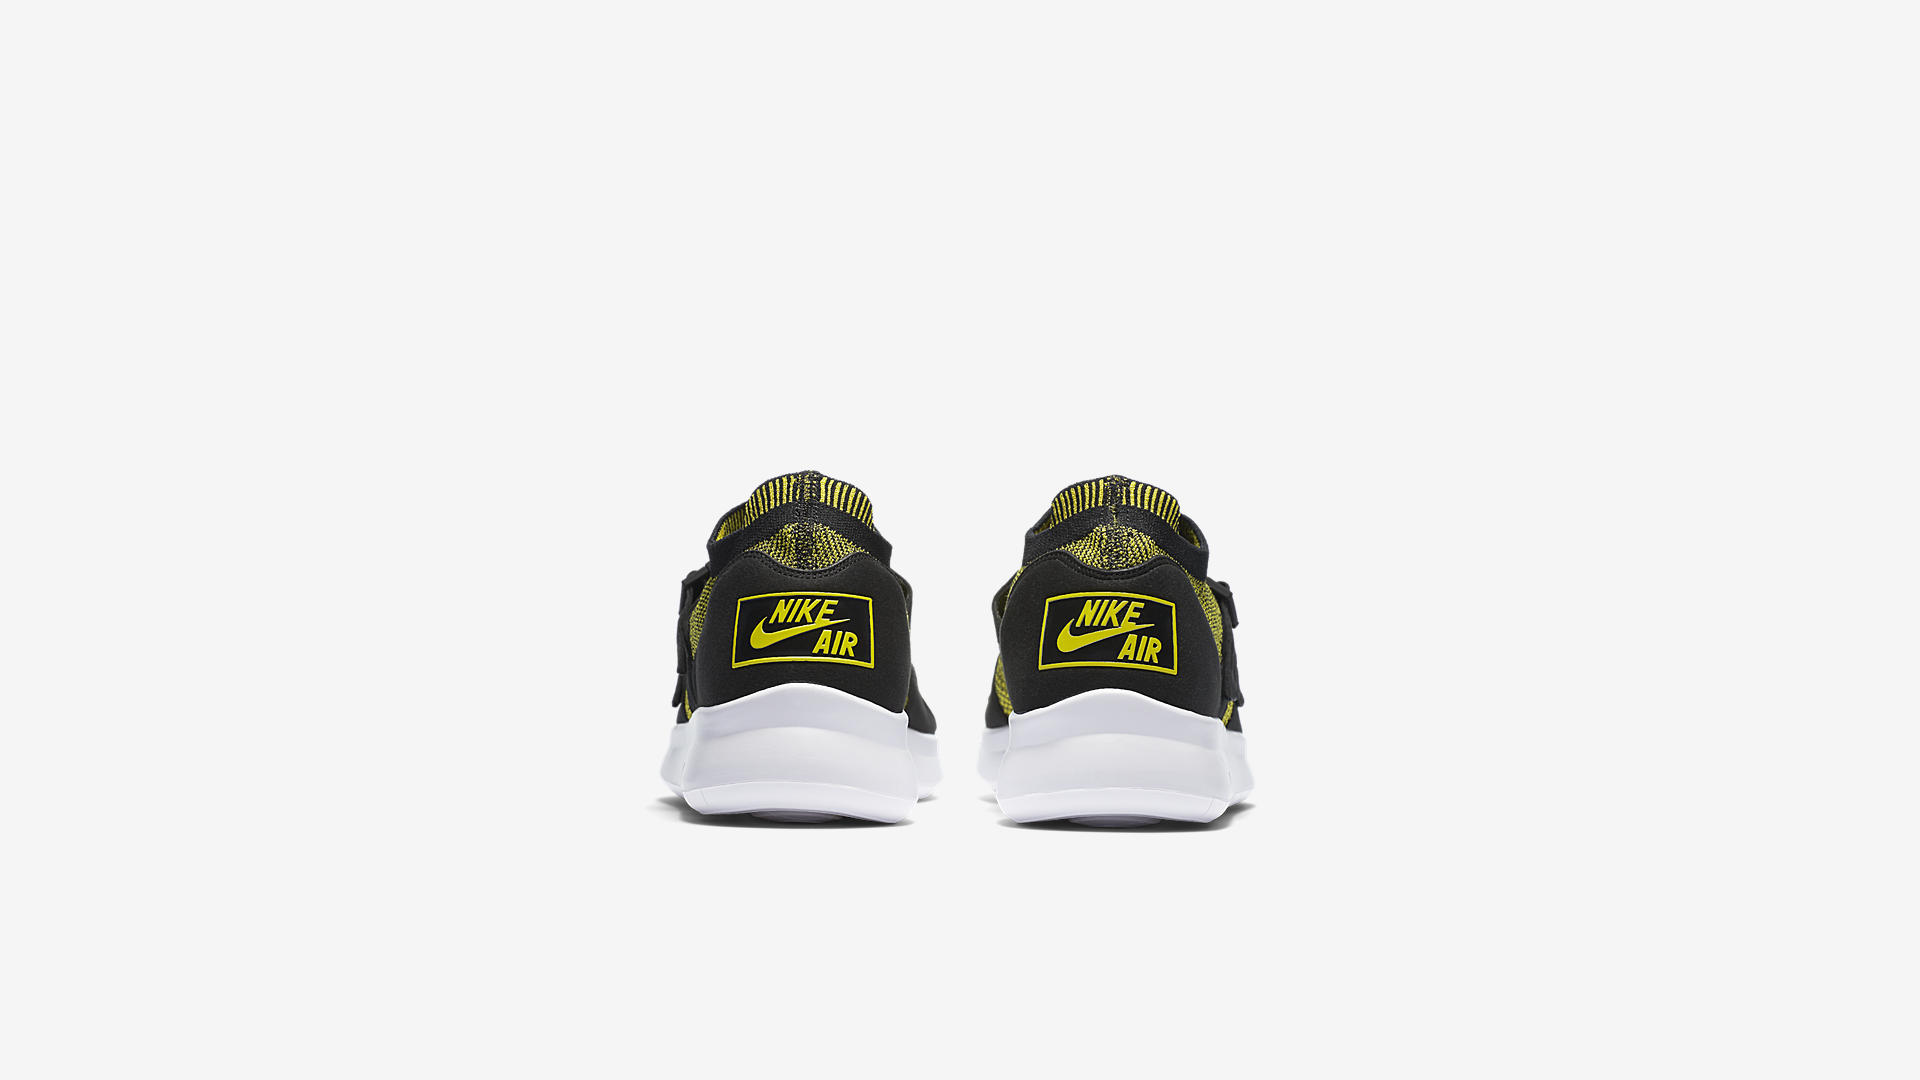 Nike Air Sock Racer Ultra Flyknit Yellow Strike 98022 700 2